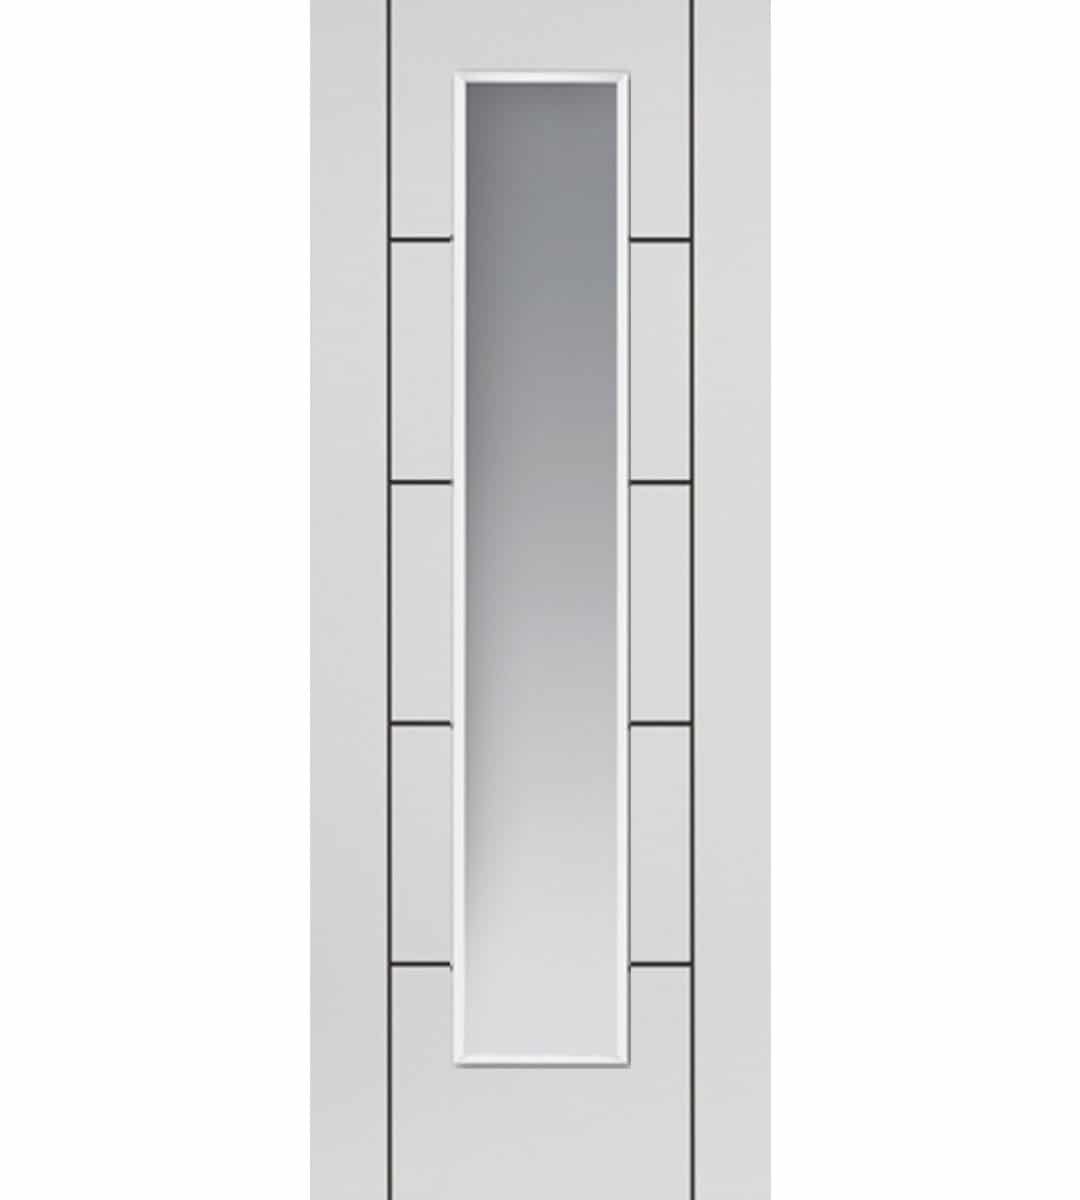 Eco Linea White Internal Glazed Door Shawfield Doors